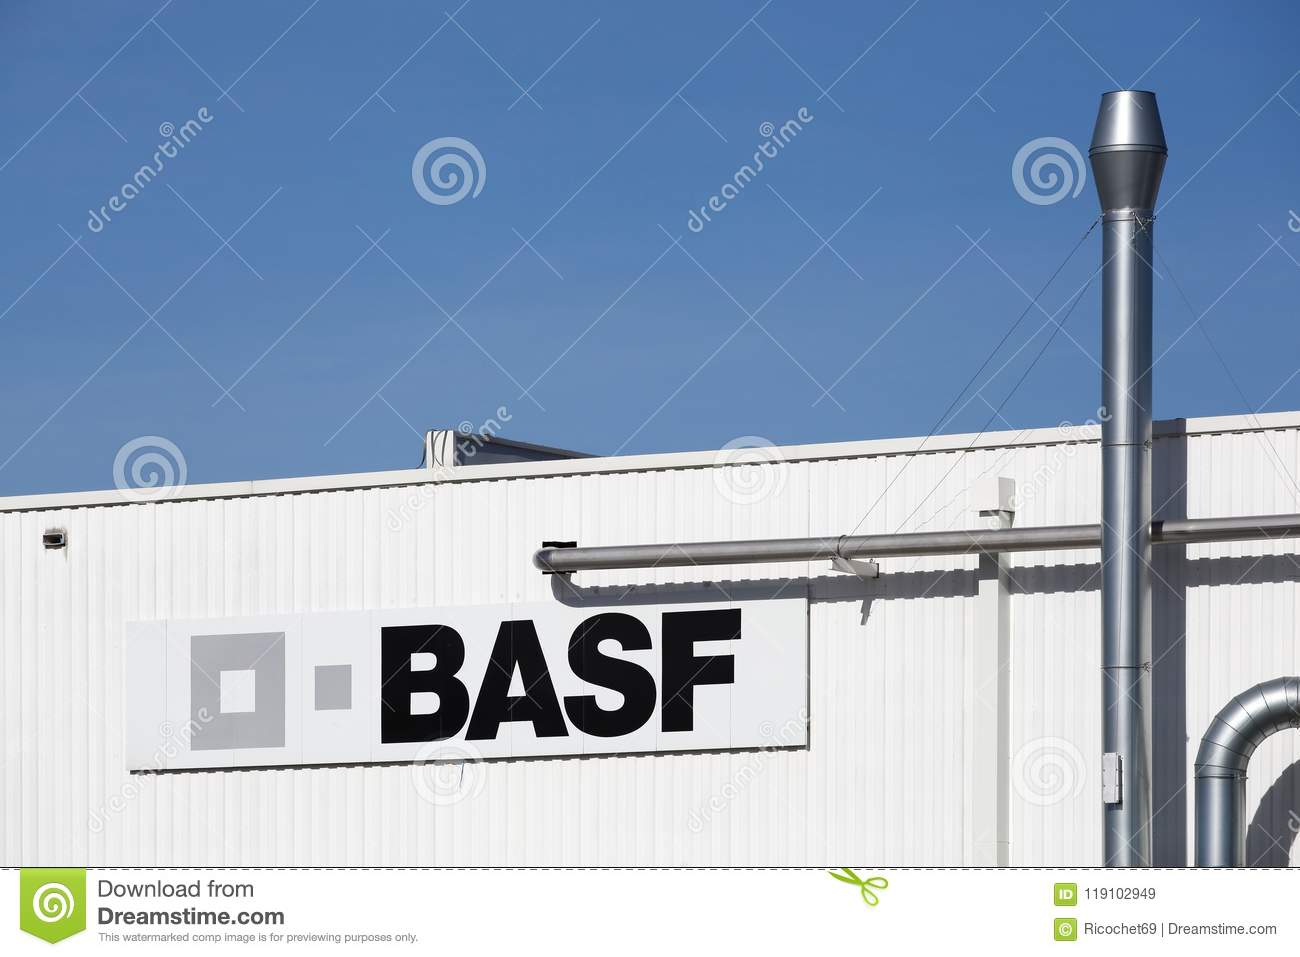 Basf Building And Factory Editorial Stock Image Image Of Symbol